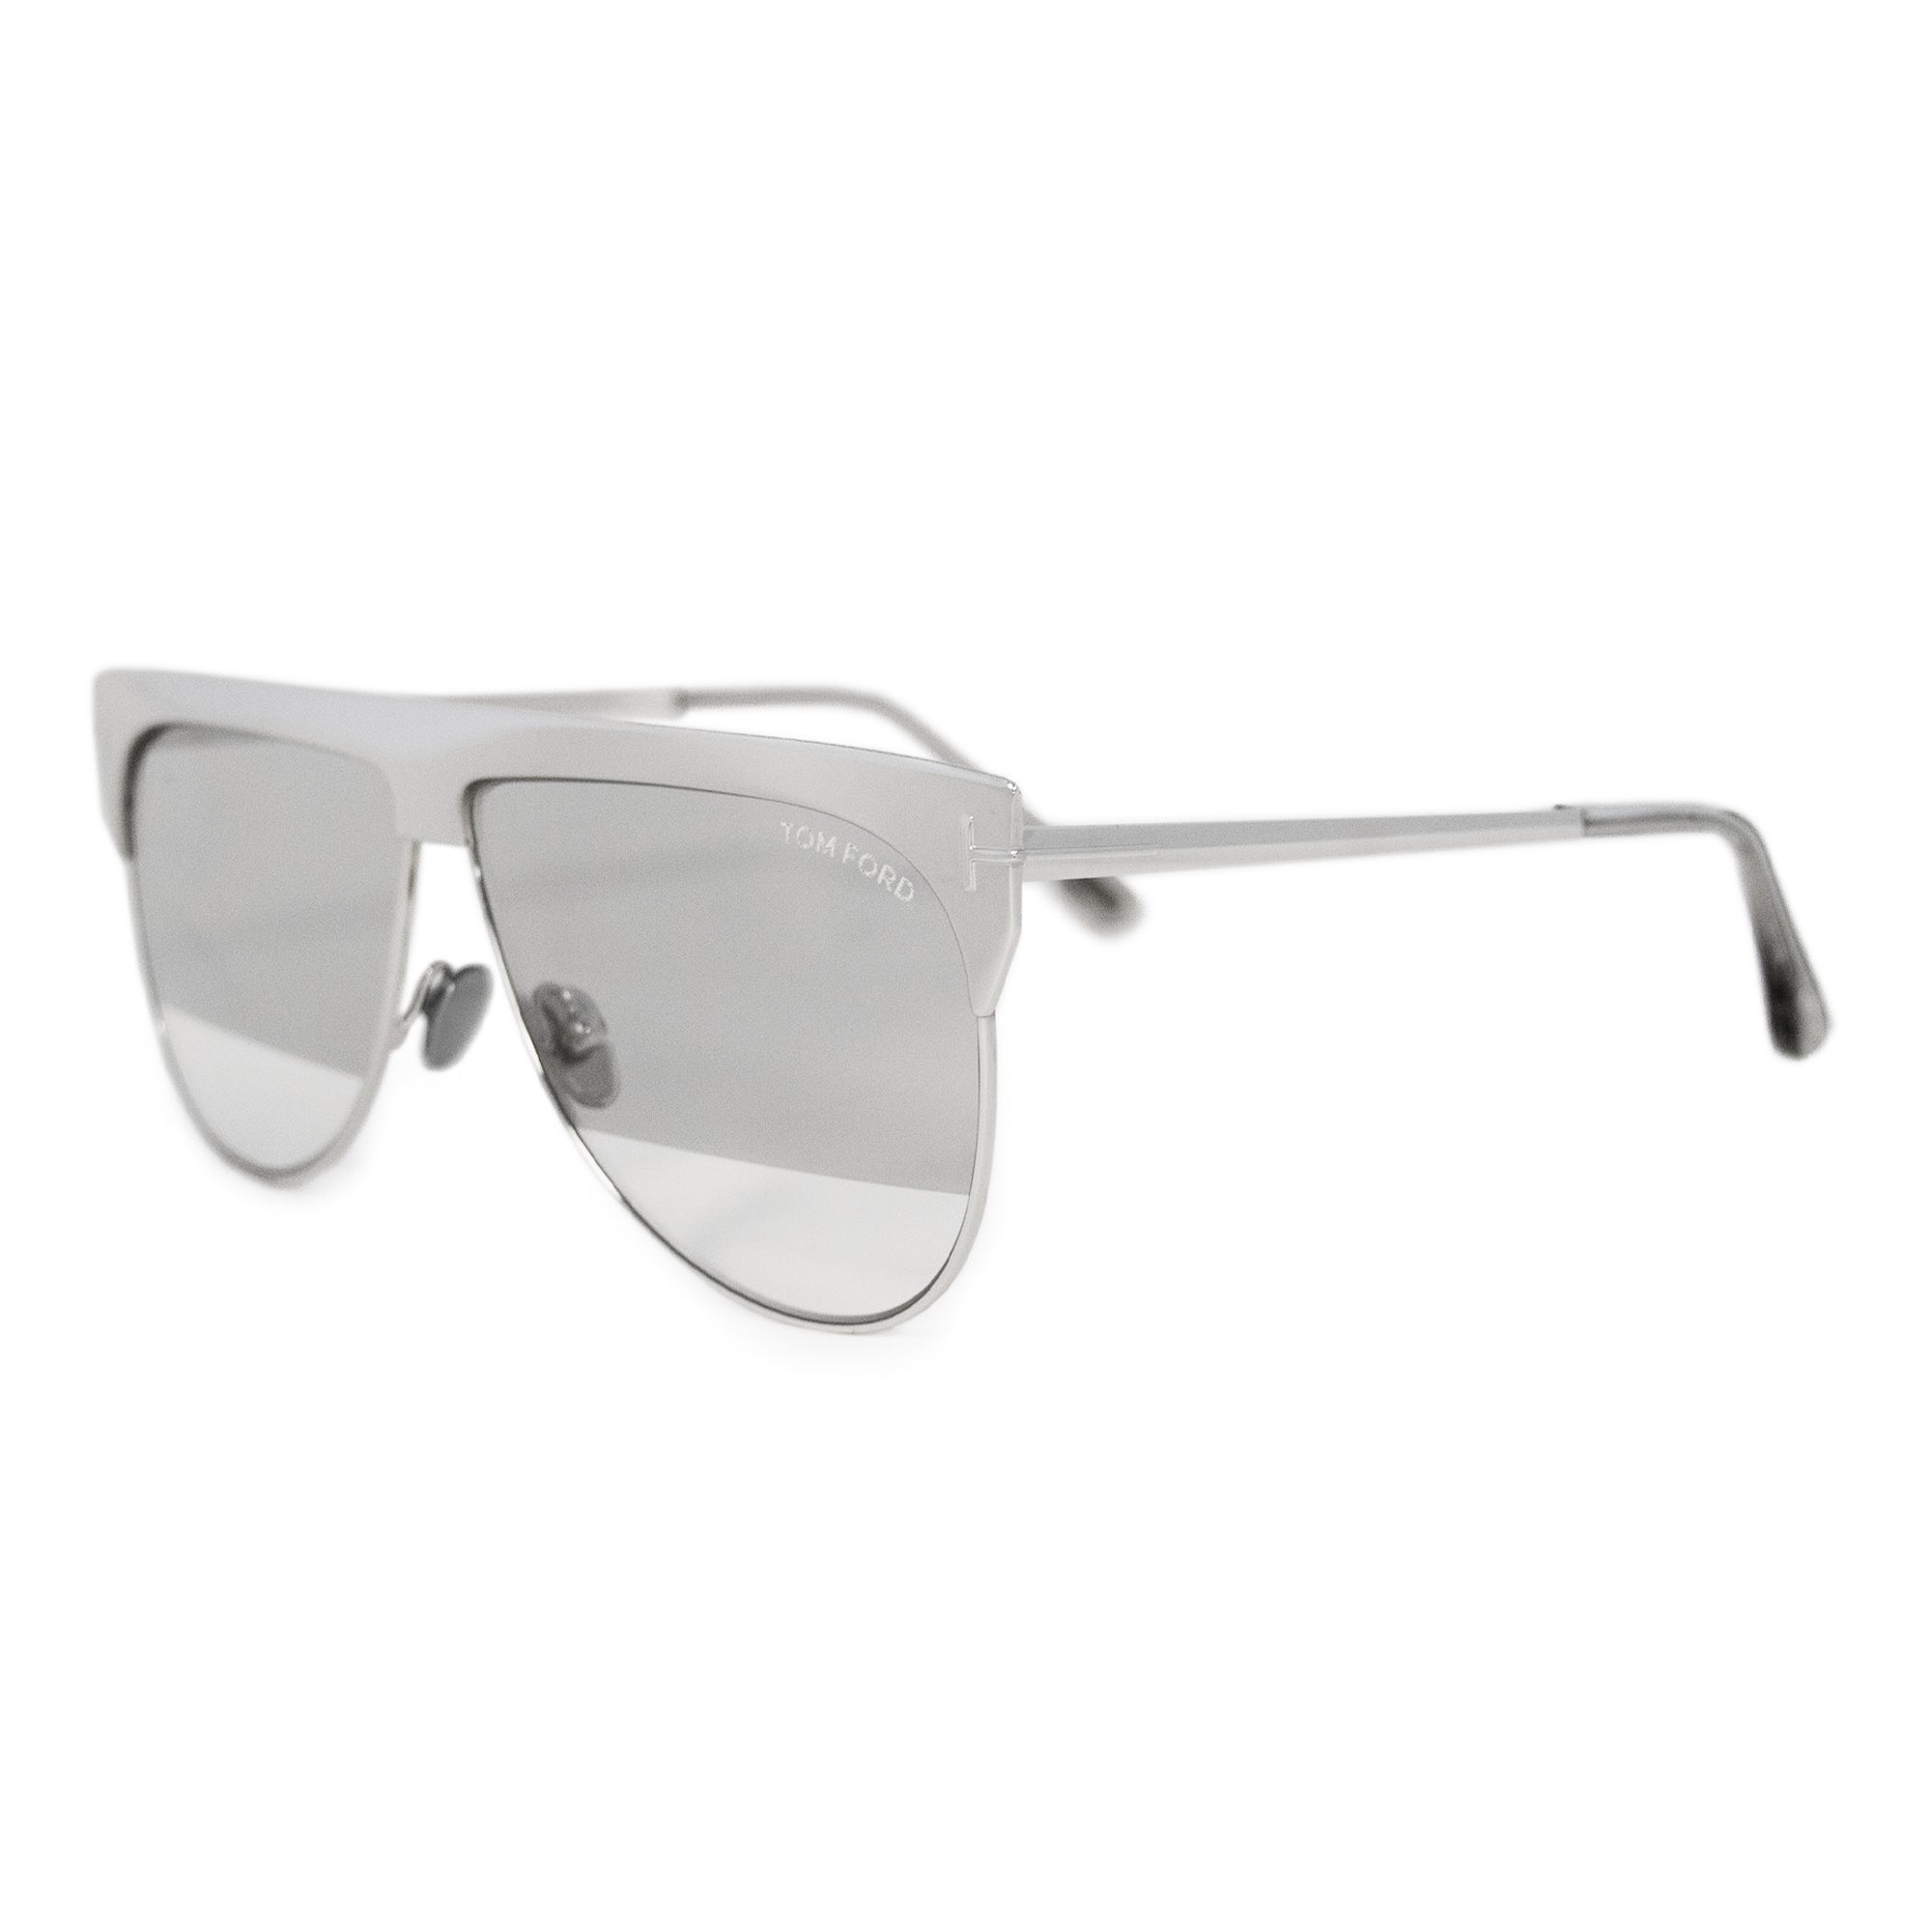 Tom Ford Winter Pilot Sunglasses FT 0707 18C 62